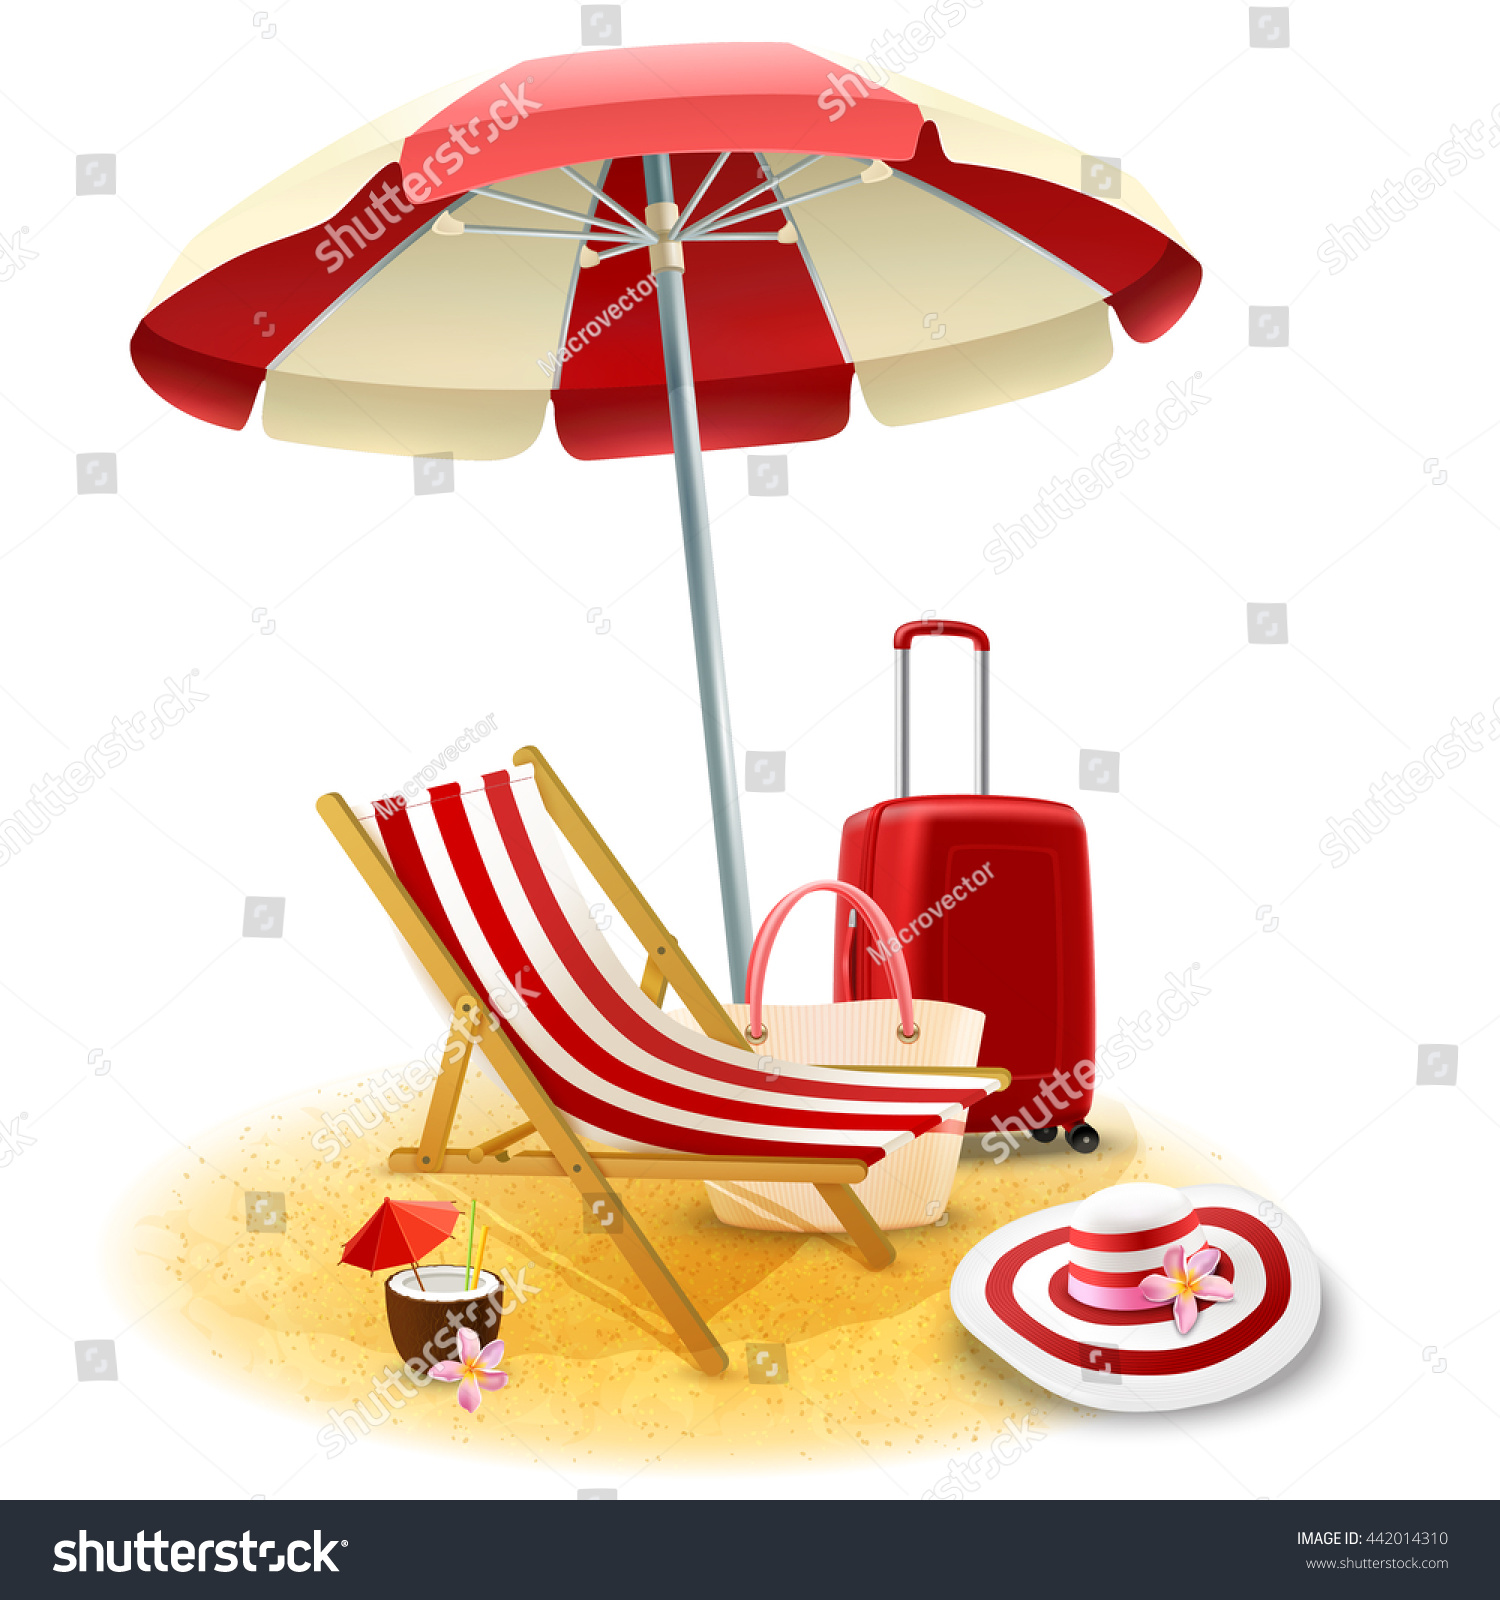 Beach Deck Chair Umbrella Suitcase Cocktail Stock Vector